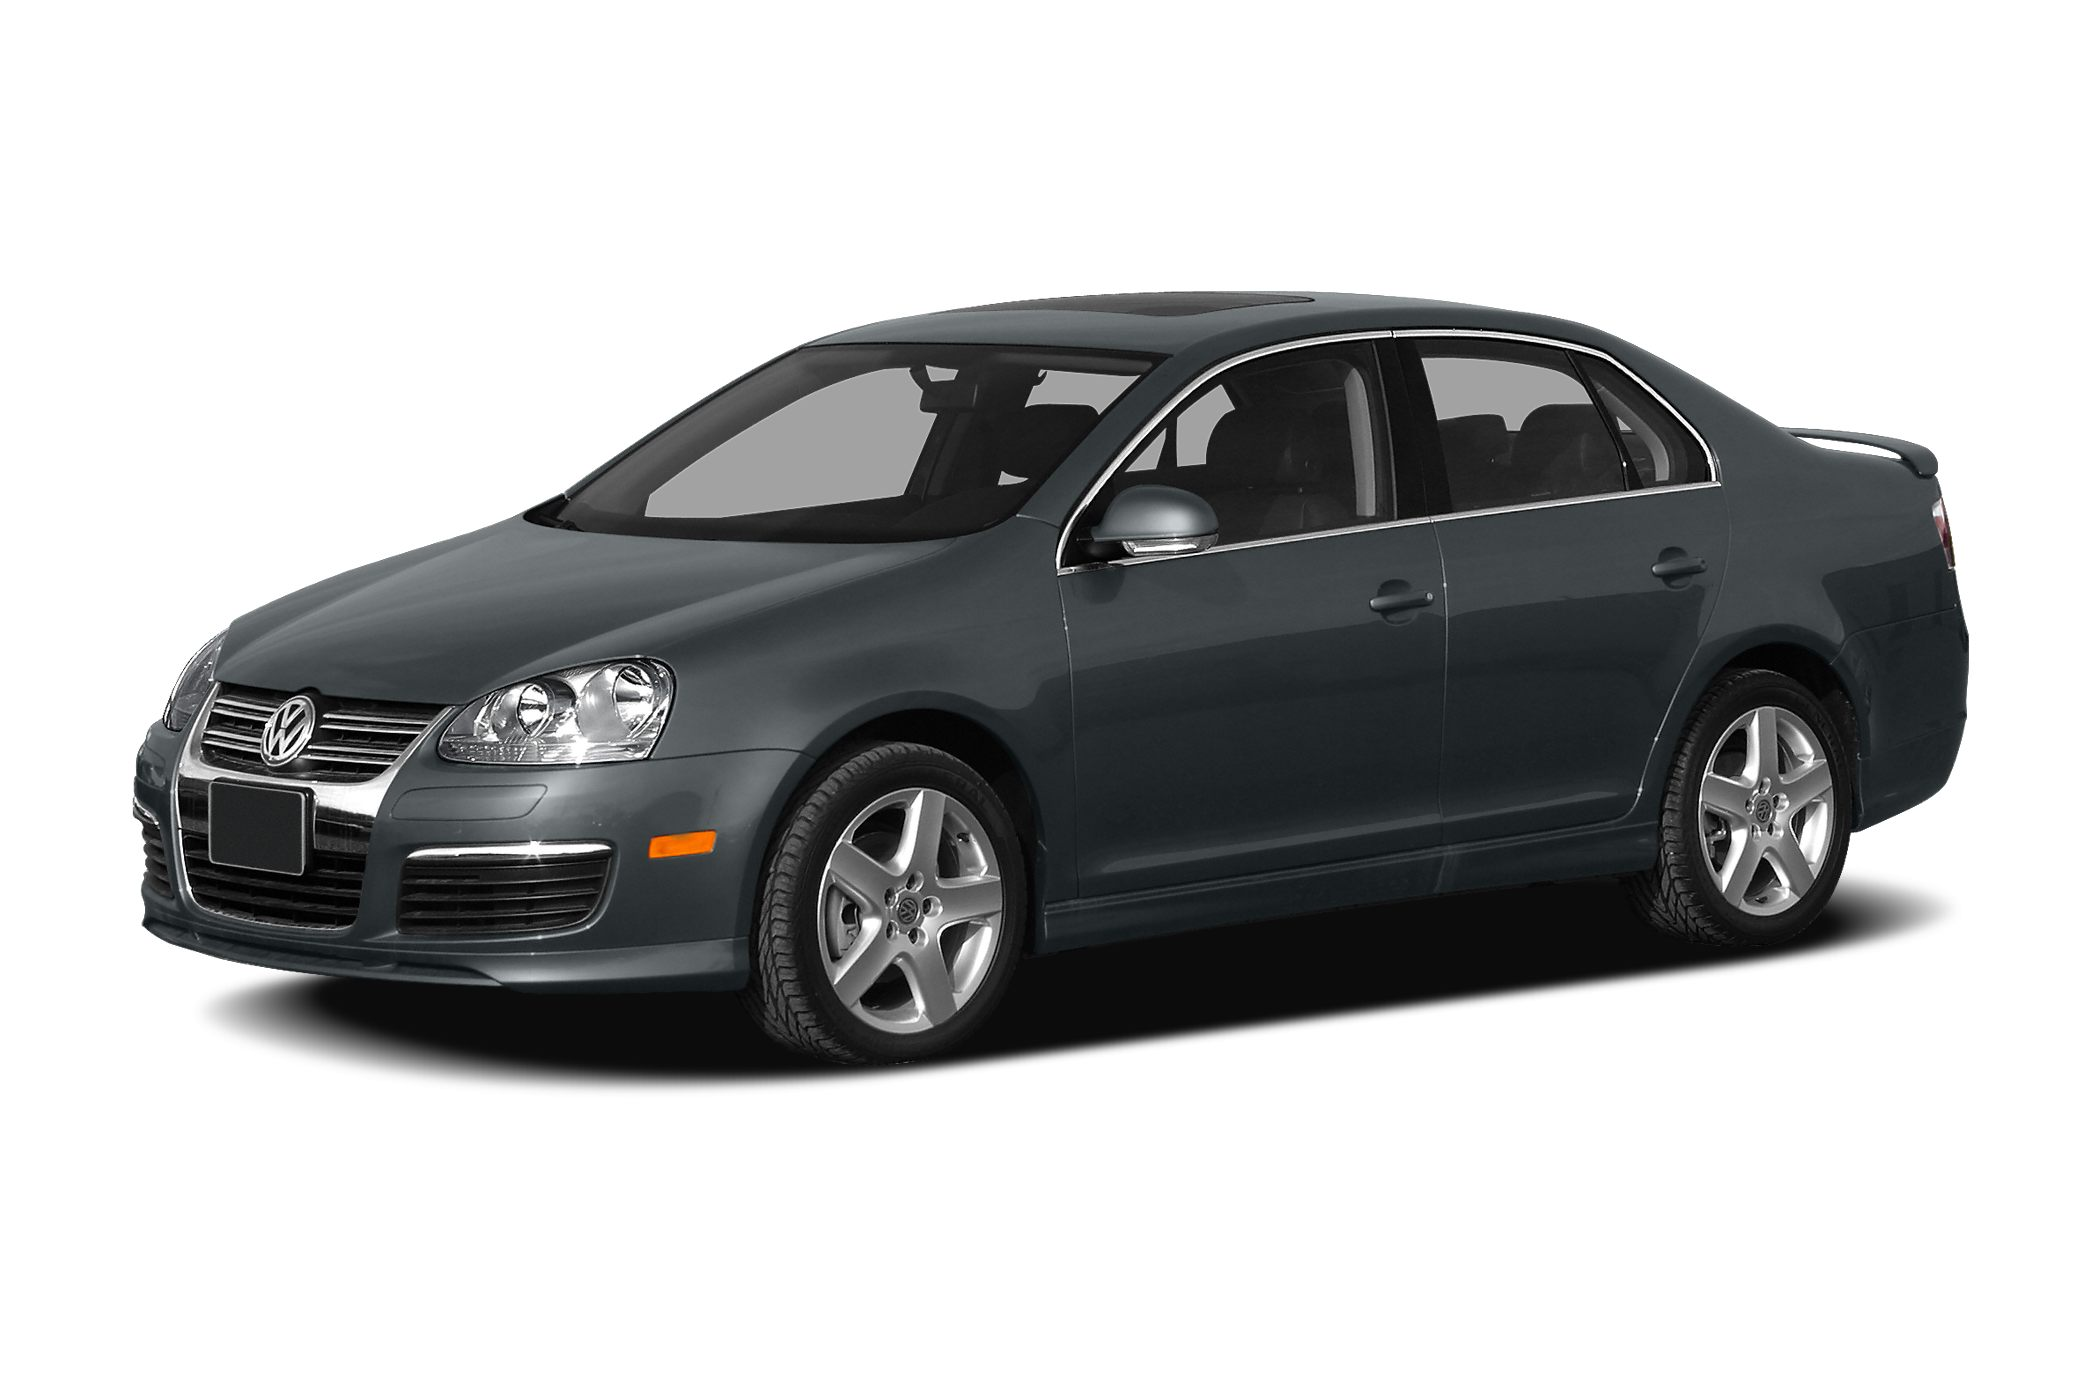 2010 Volkswagen Jetta S 4dr Sedan Pricing and Options.